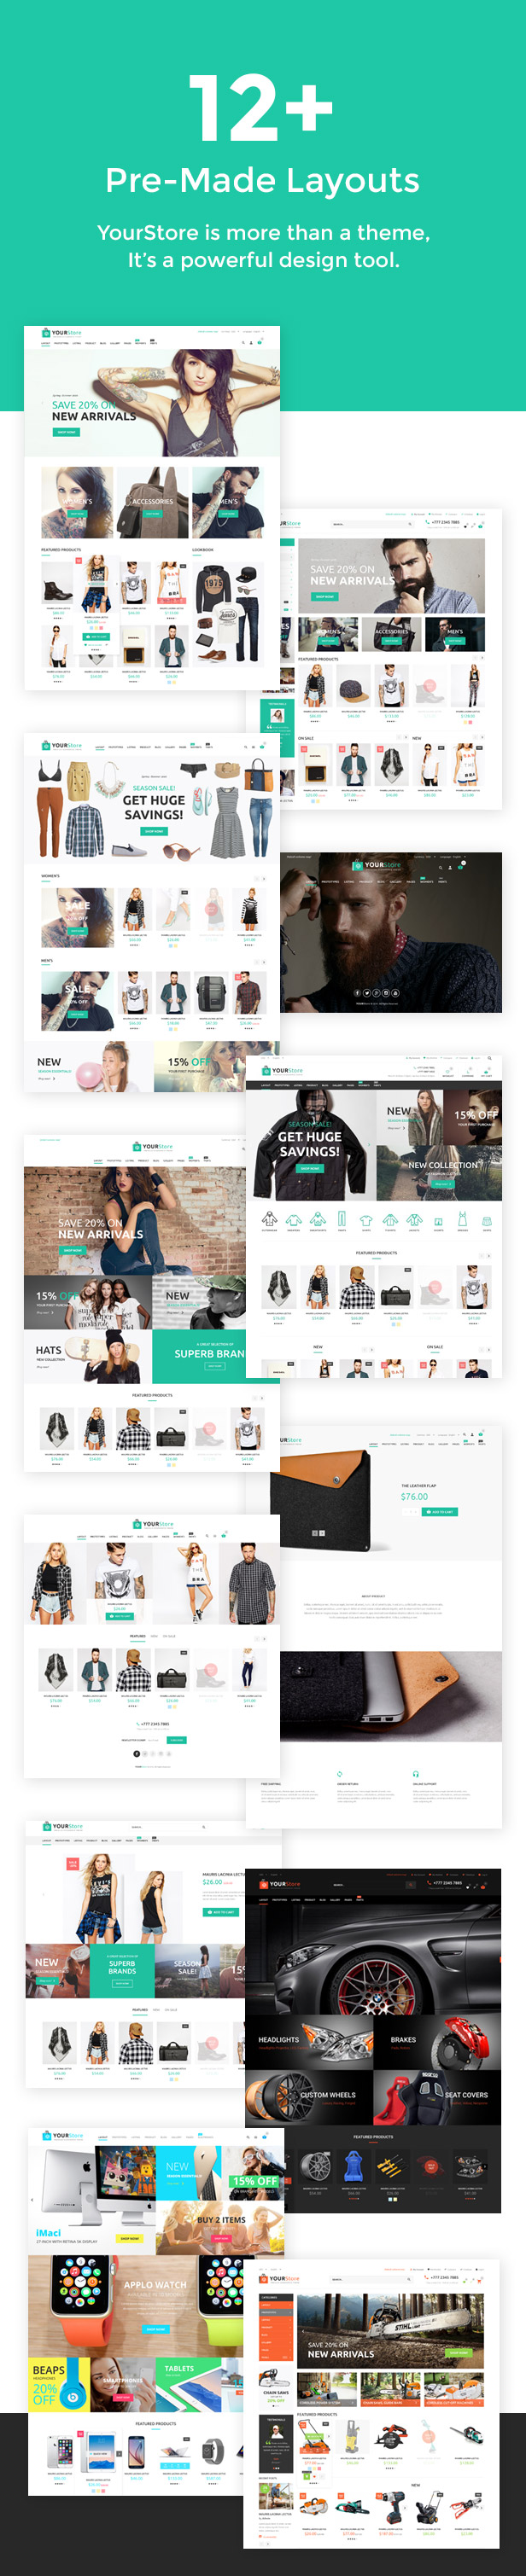 Giveaway: Win 3 Copies Of YourStore ?? Woocommerce Theme